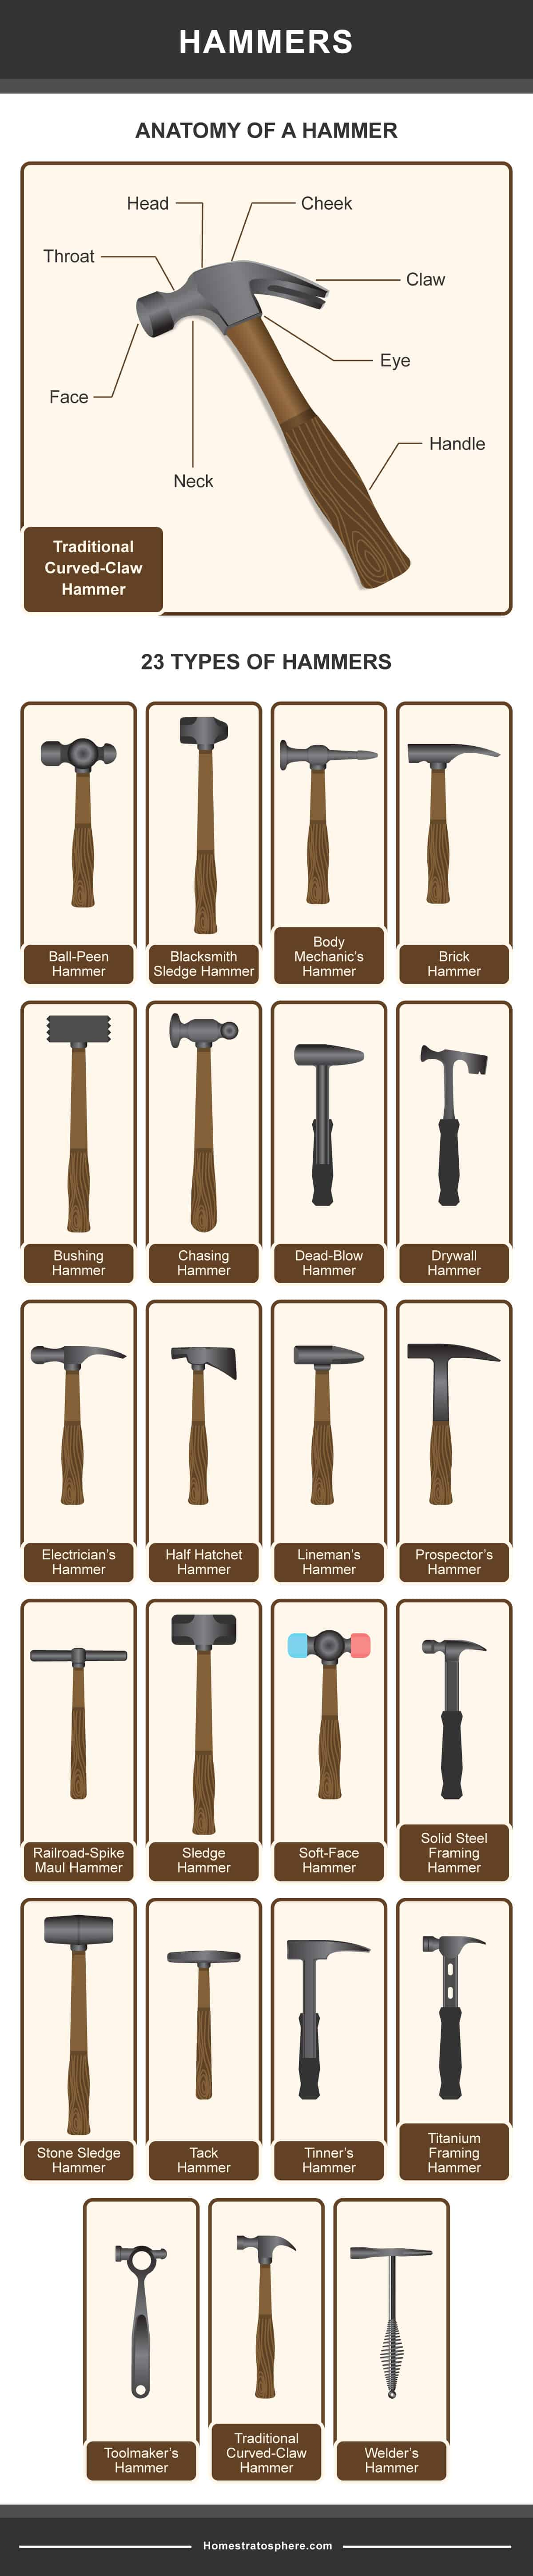 Diagram showing the different types of hammers.